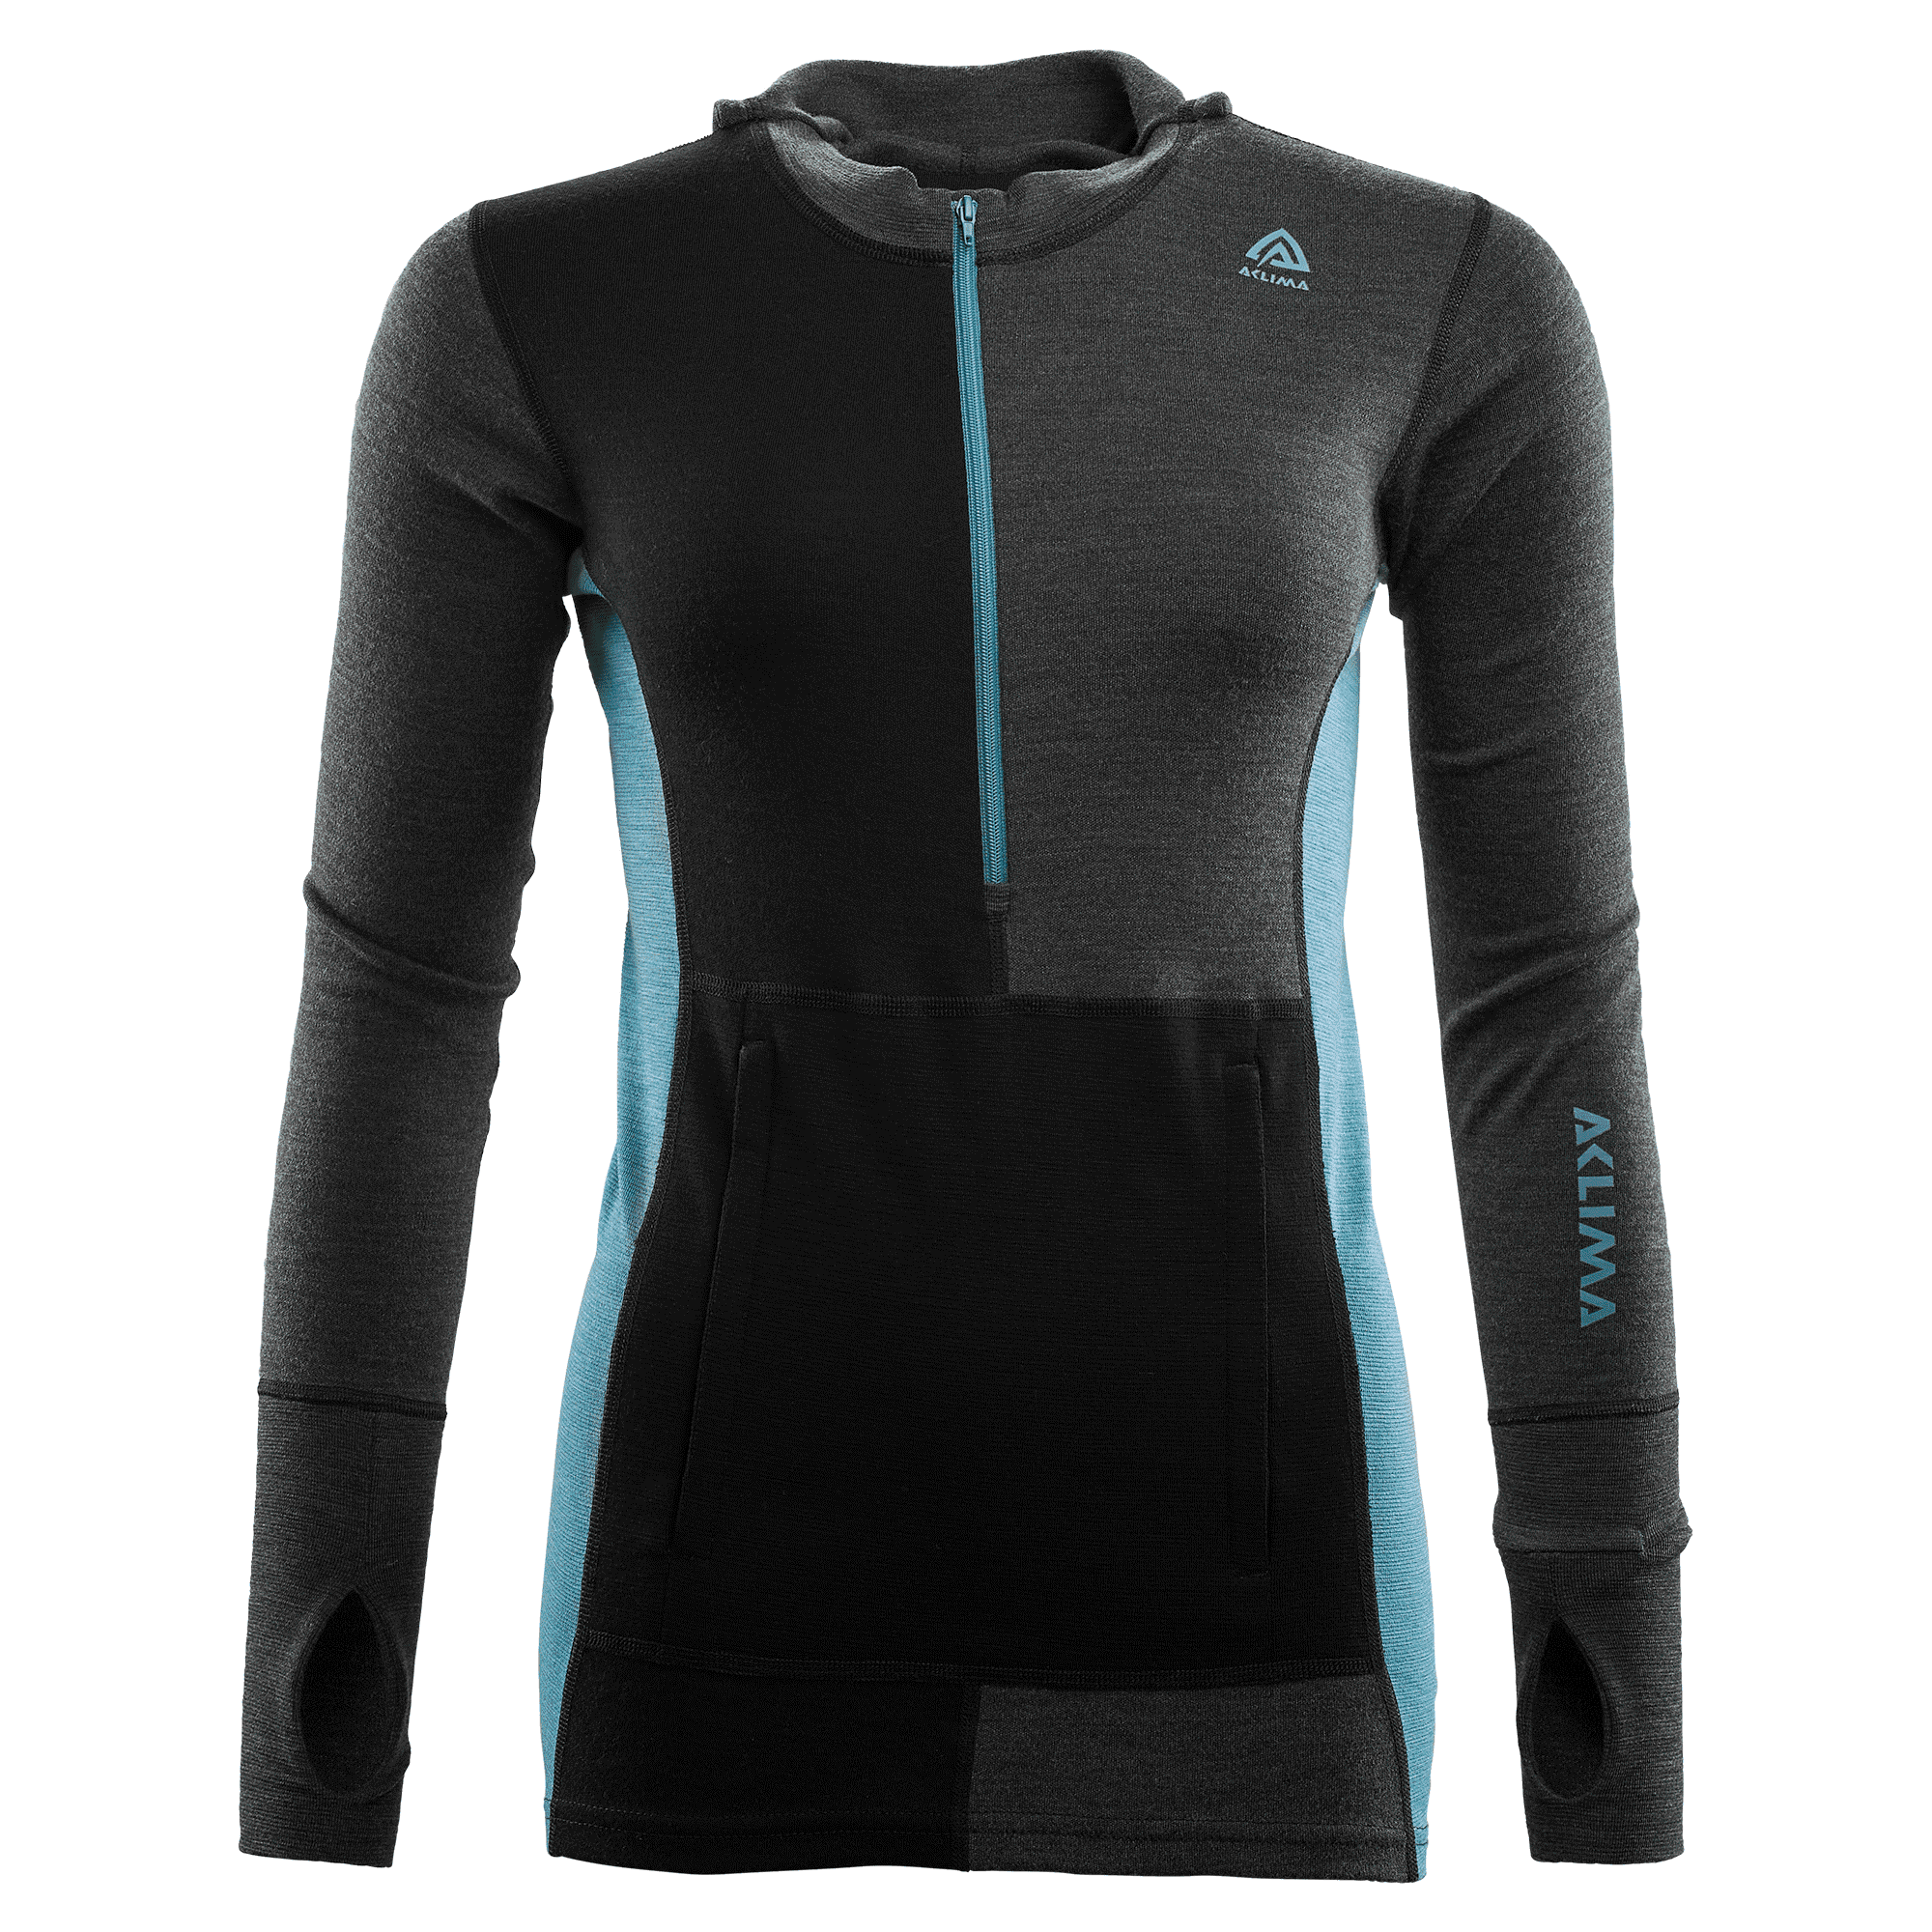 Long-sleeved t-shirt, Neck, Outerwear, Jersey, Turquoise, Black, Sleeve, Clothing